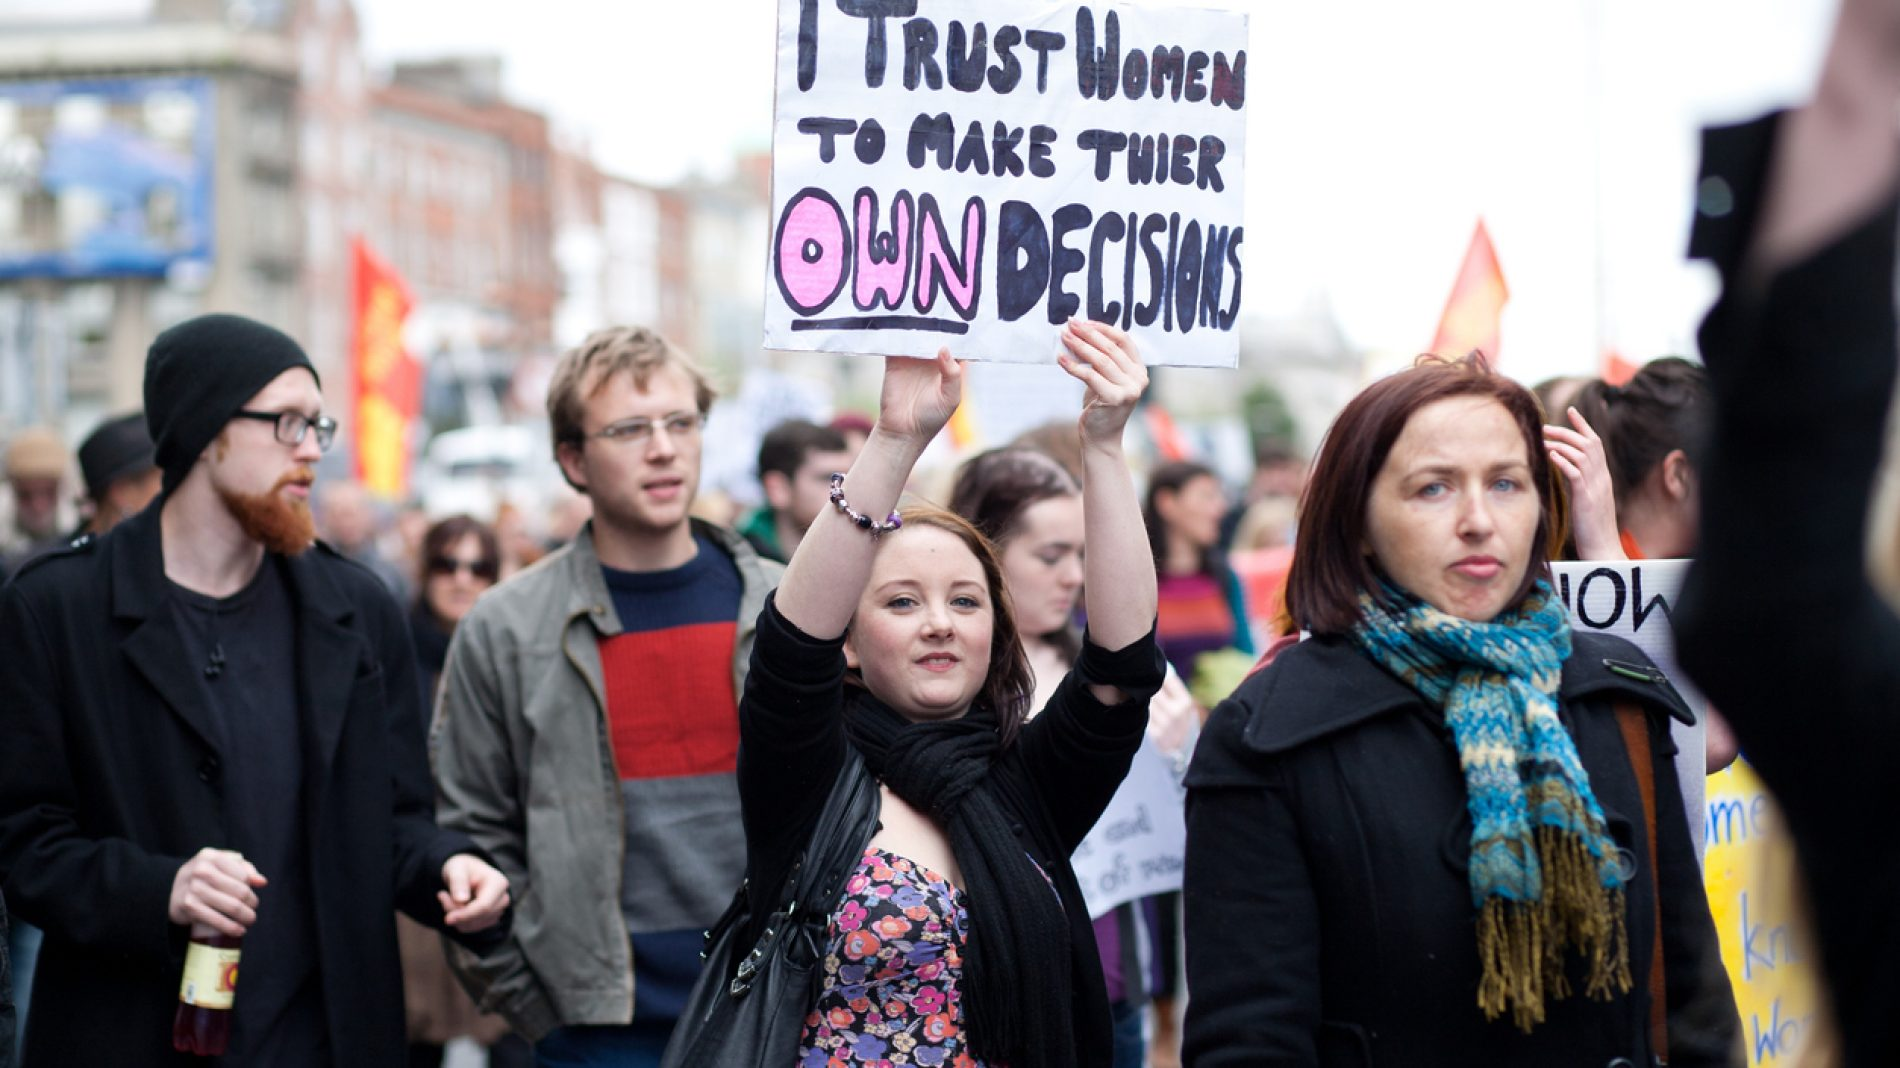 Young woman holds hand made poster about women decisions